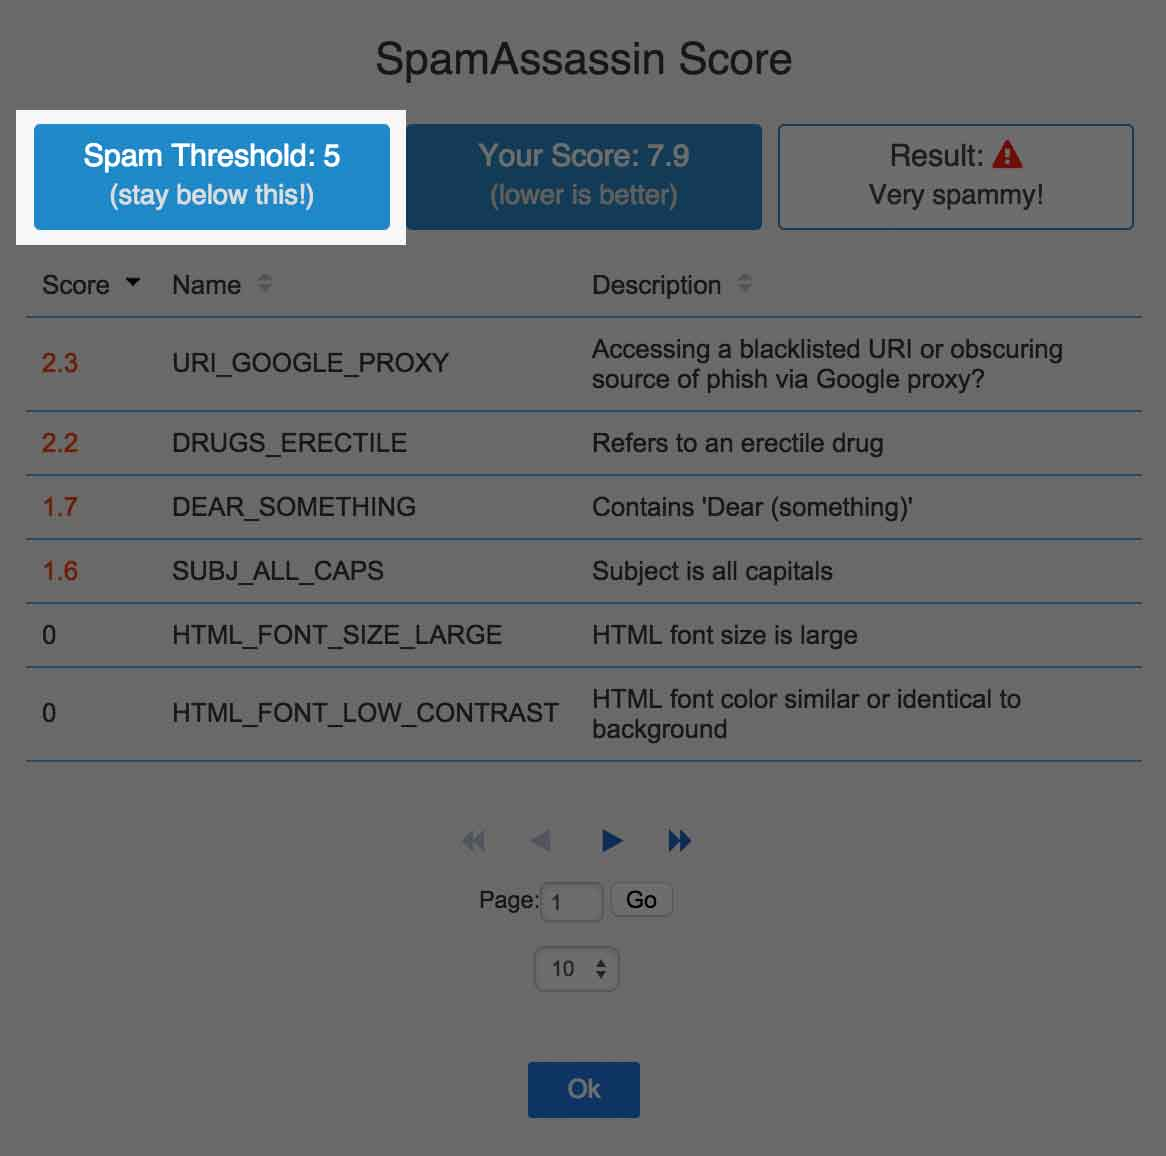 spamAssassin-spam-threshold